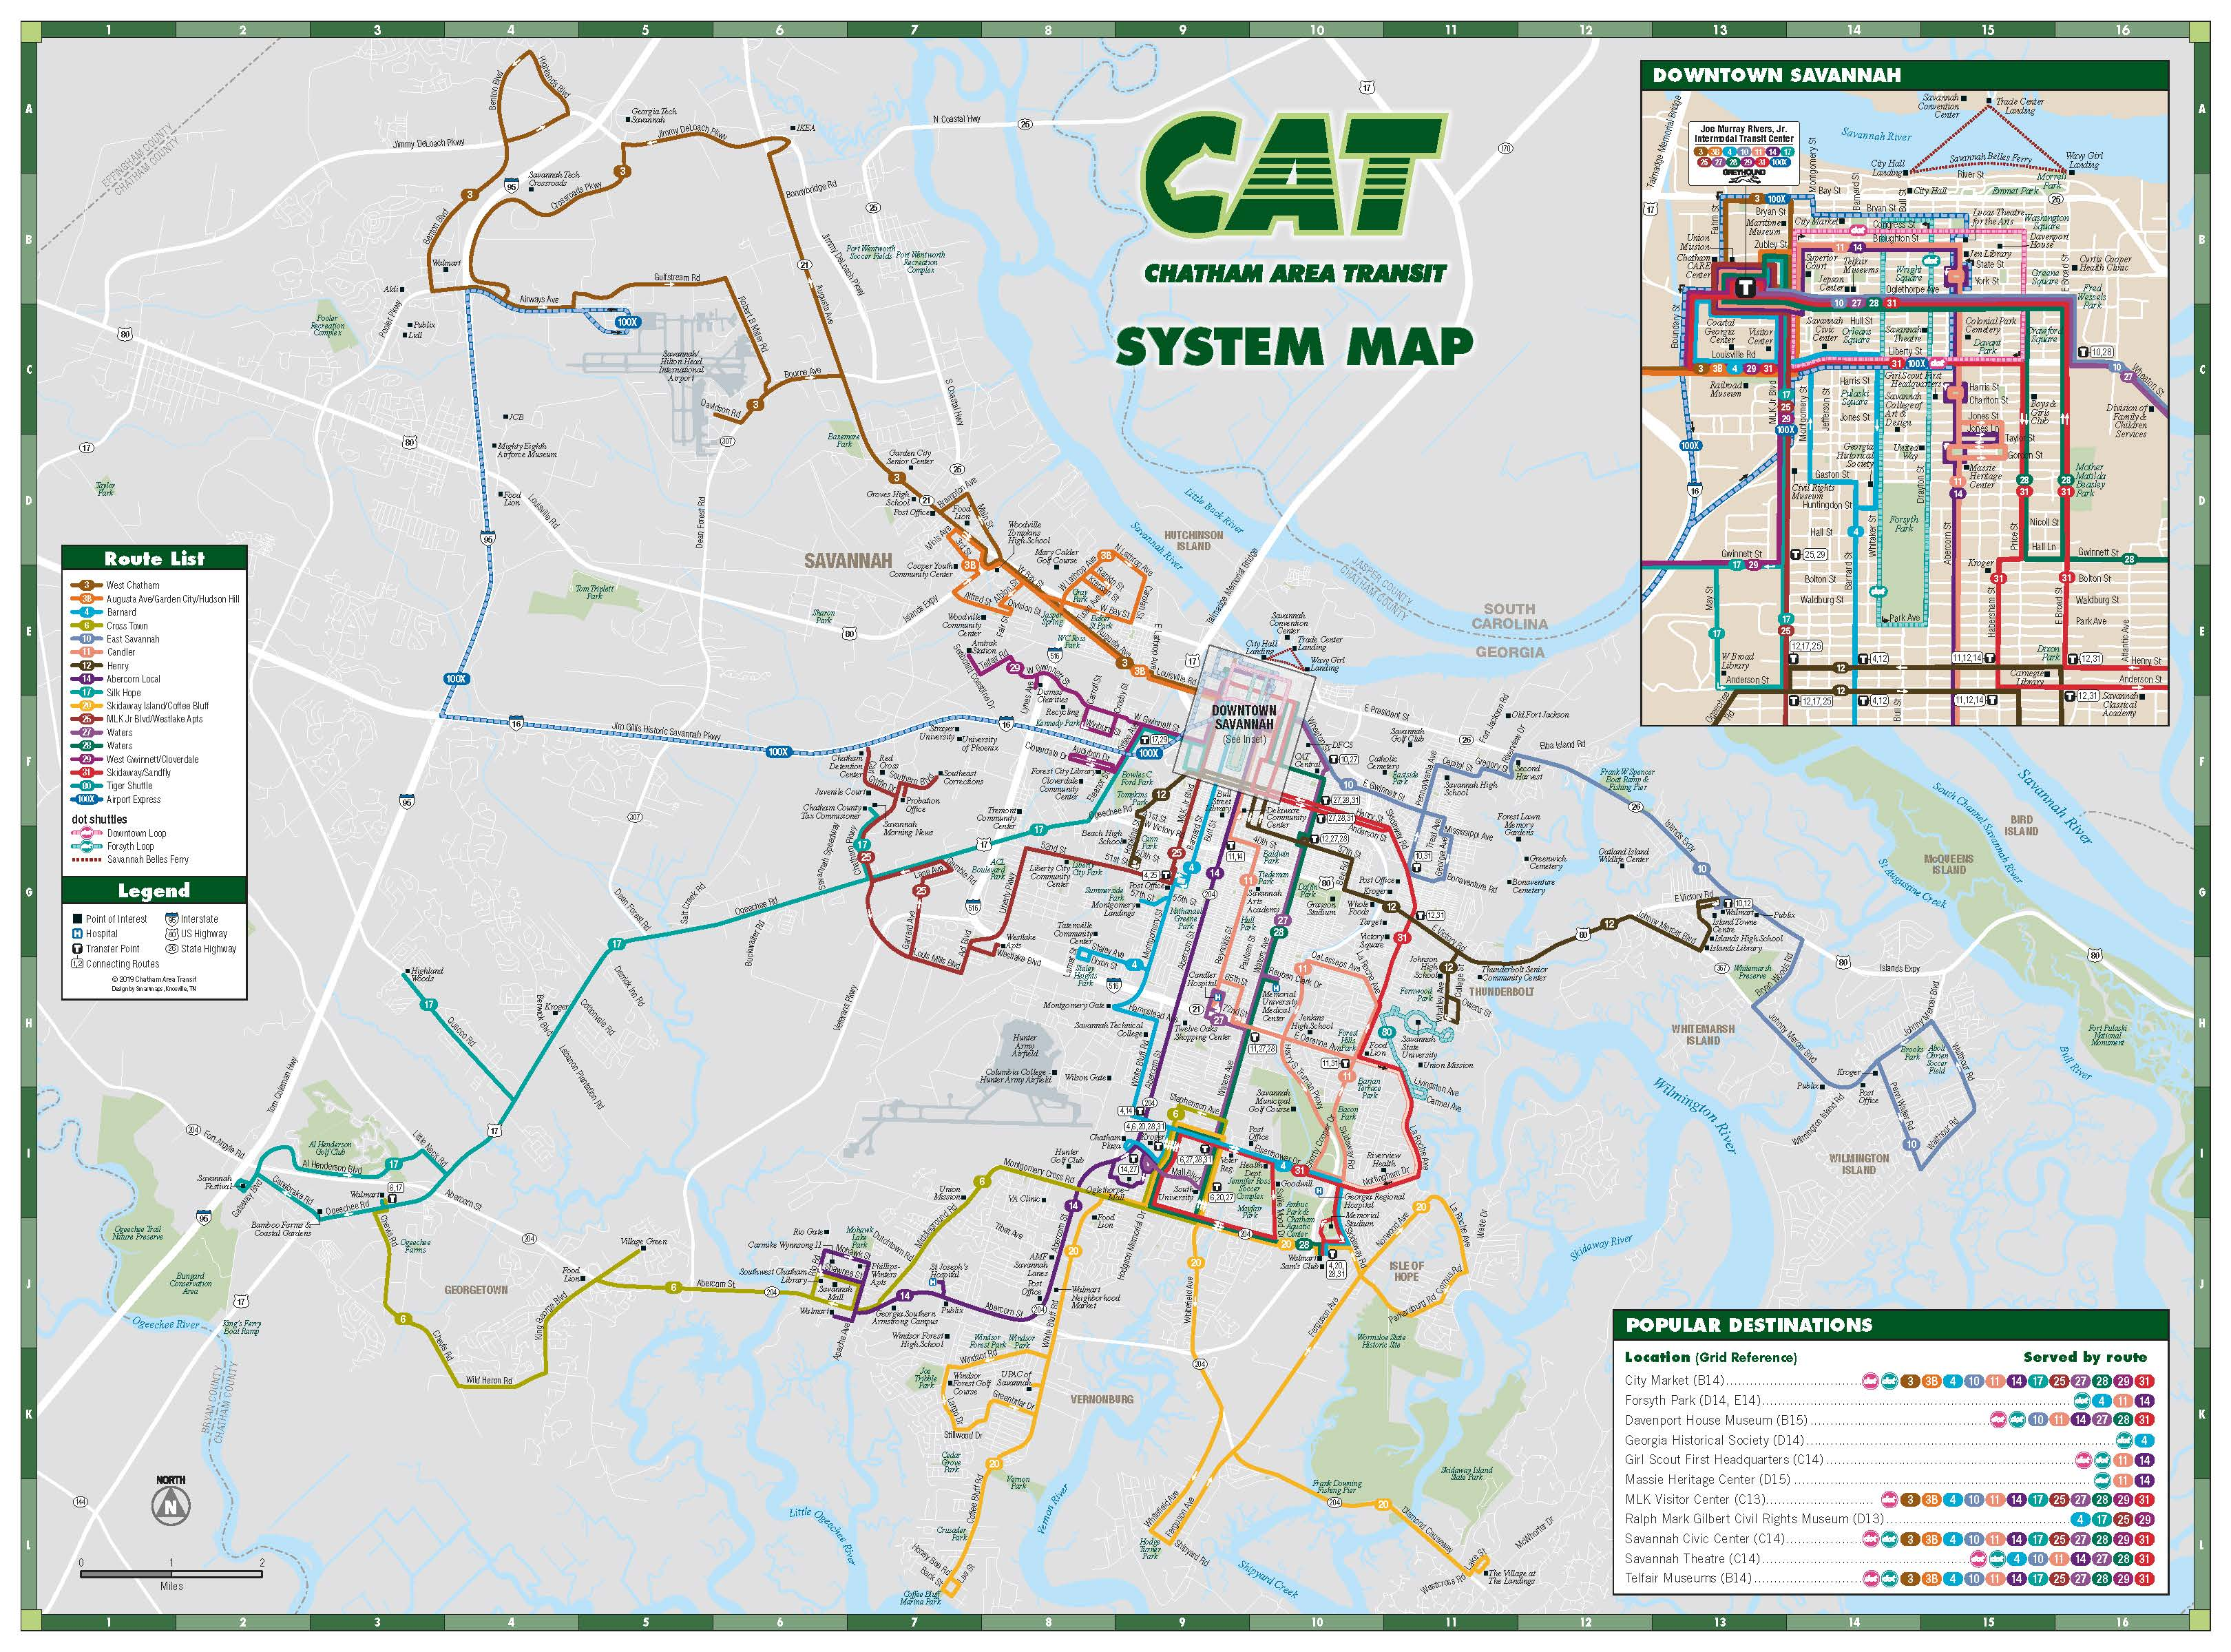 This image shows a map of the CAT bus system